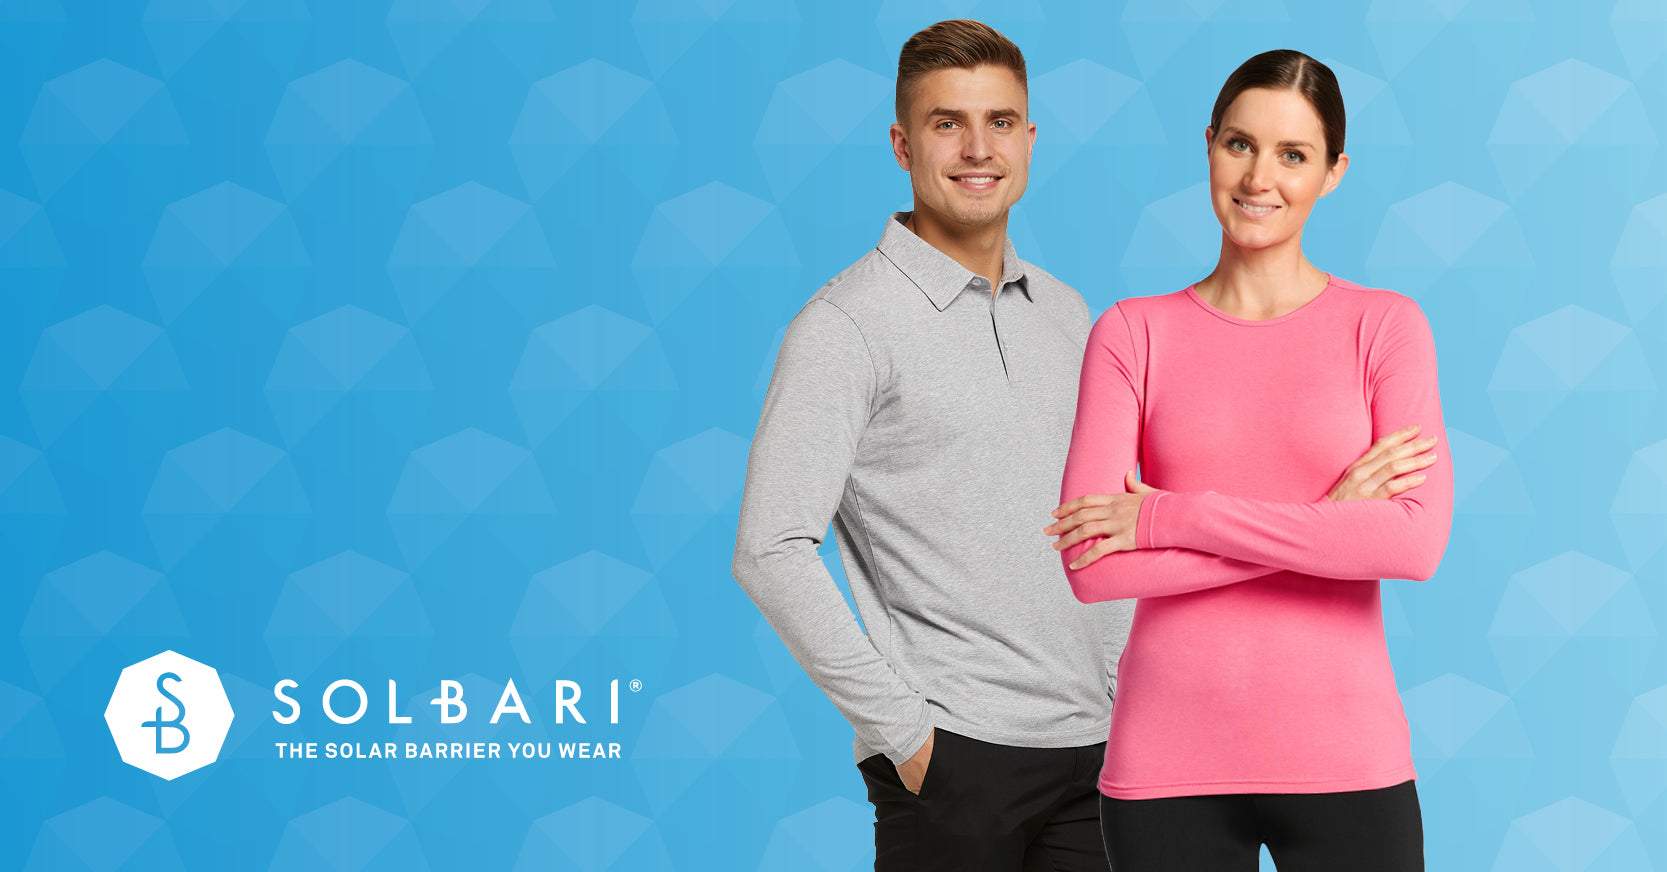 Welcome to SOLBARI, your specialist in stylish UPF50+ sun protection